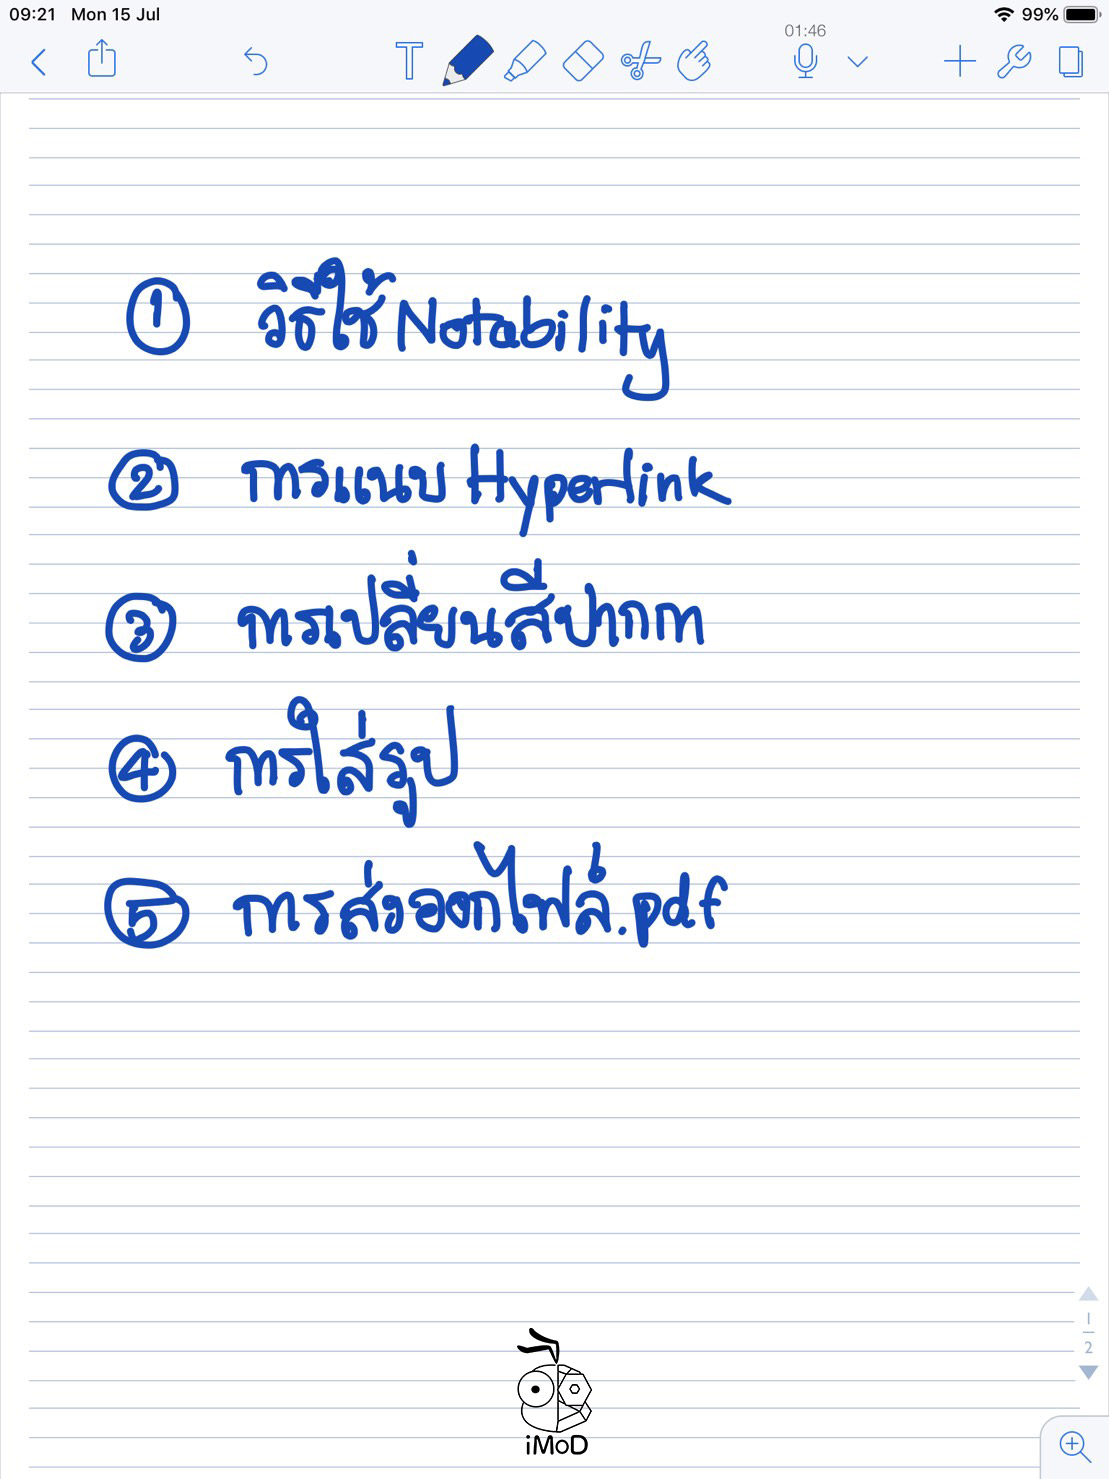 Record Notability 1 1